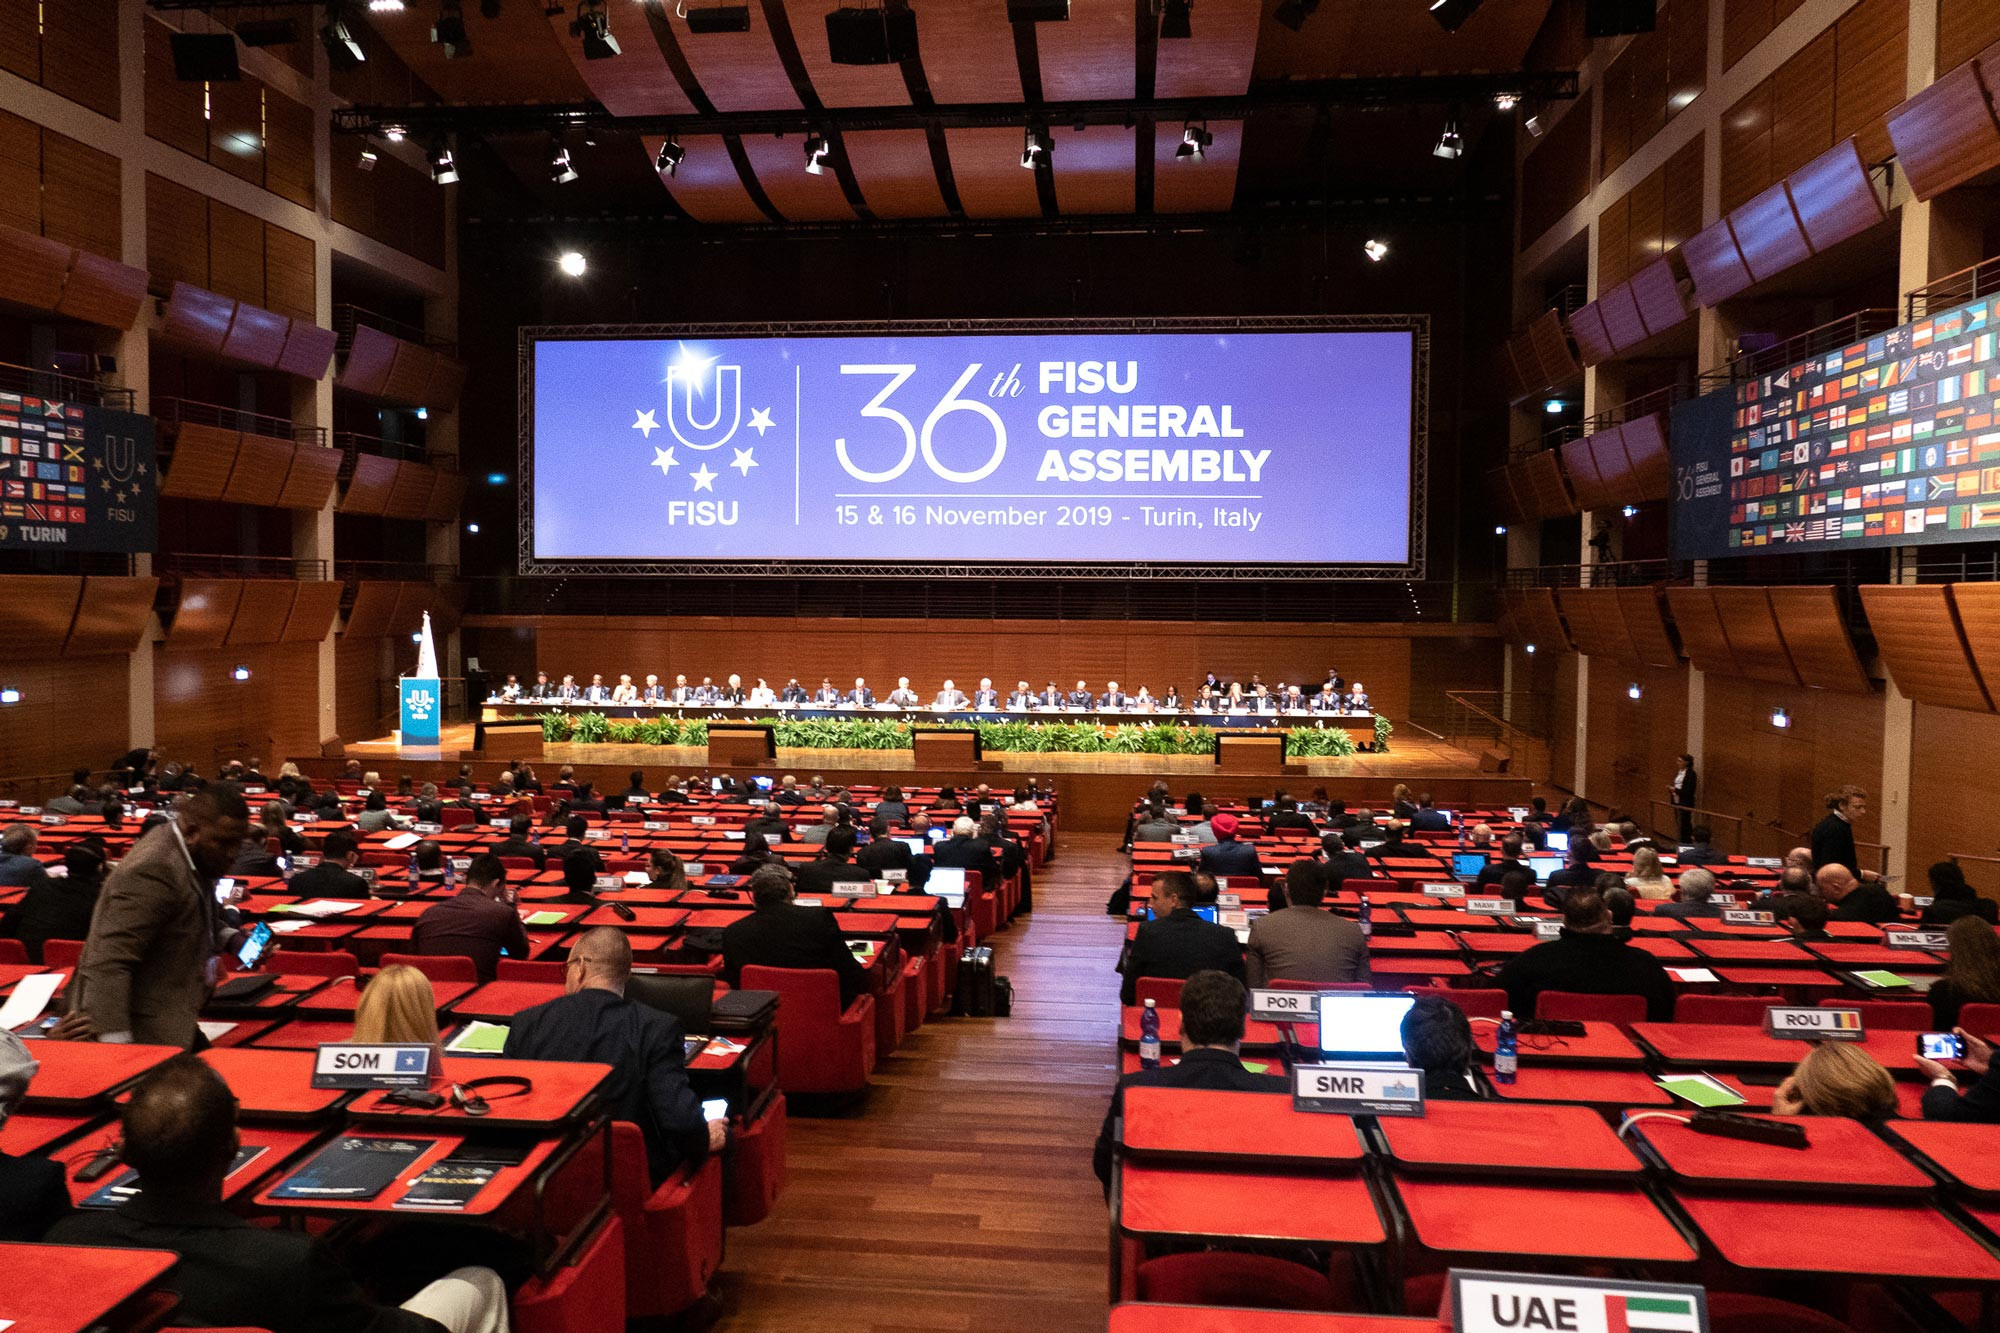 The General Assembly took place in the Lingotto Congress Center in Turin, which is part of the old Fiat factory ©FISU